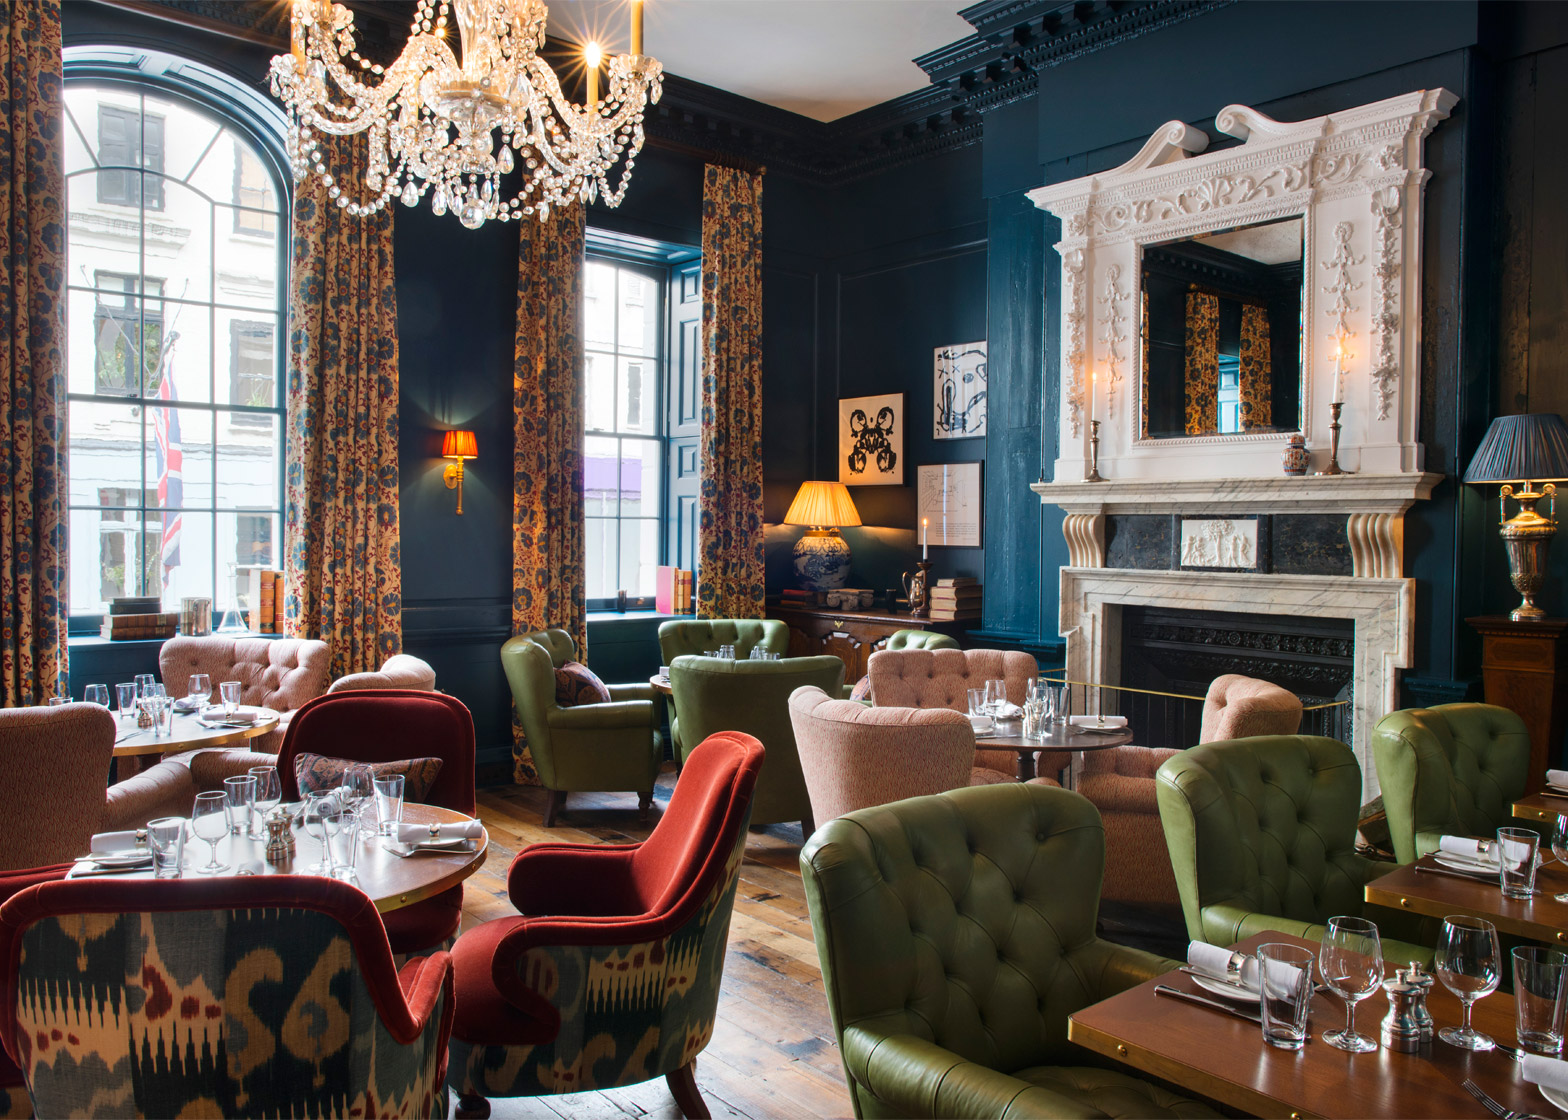 Soho House 76 Dean Street, London, England